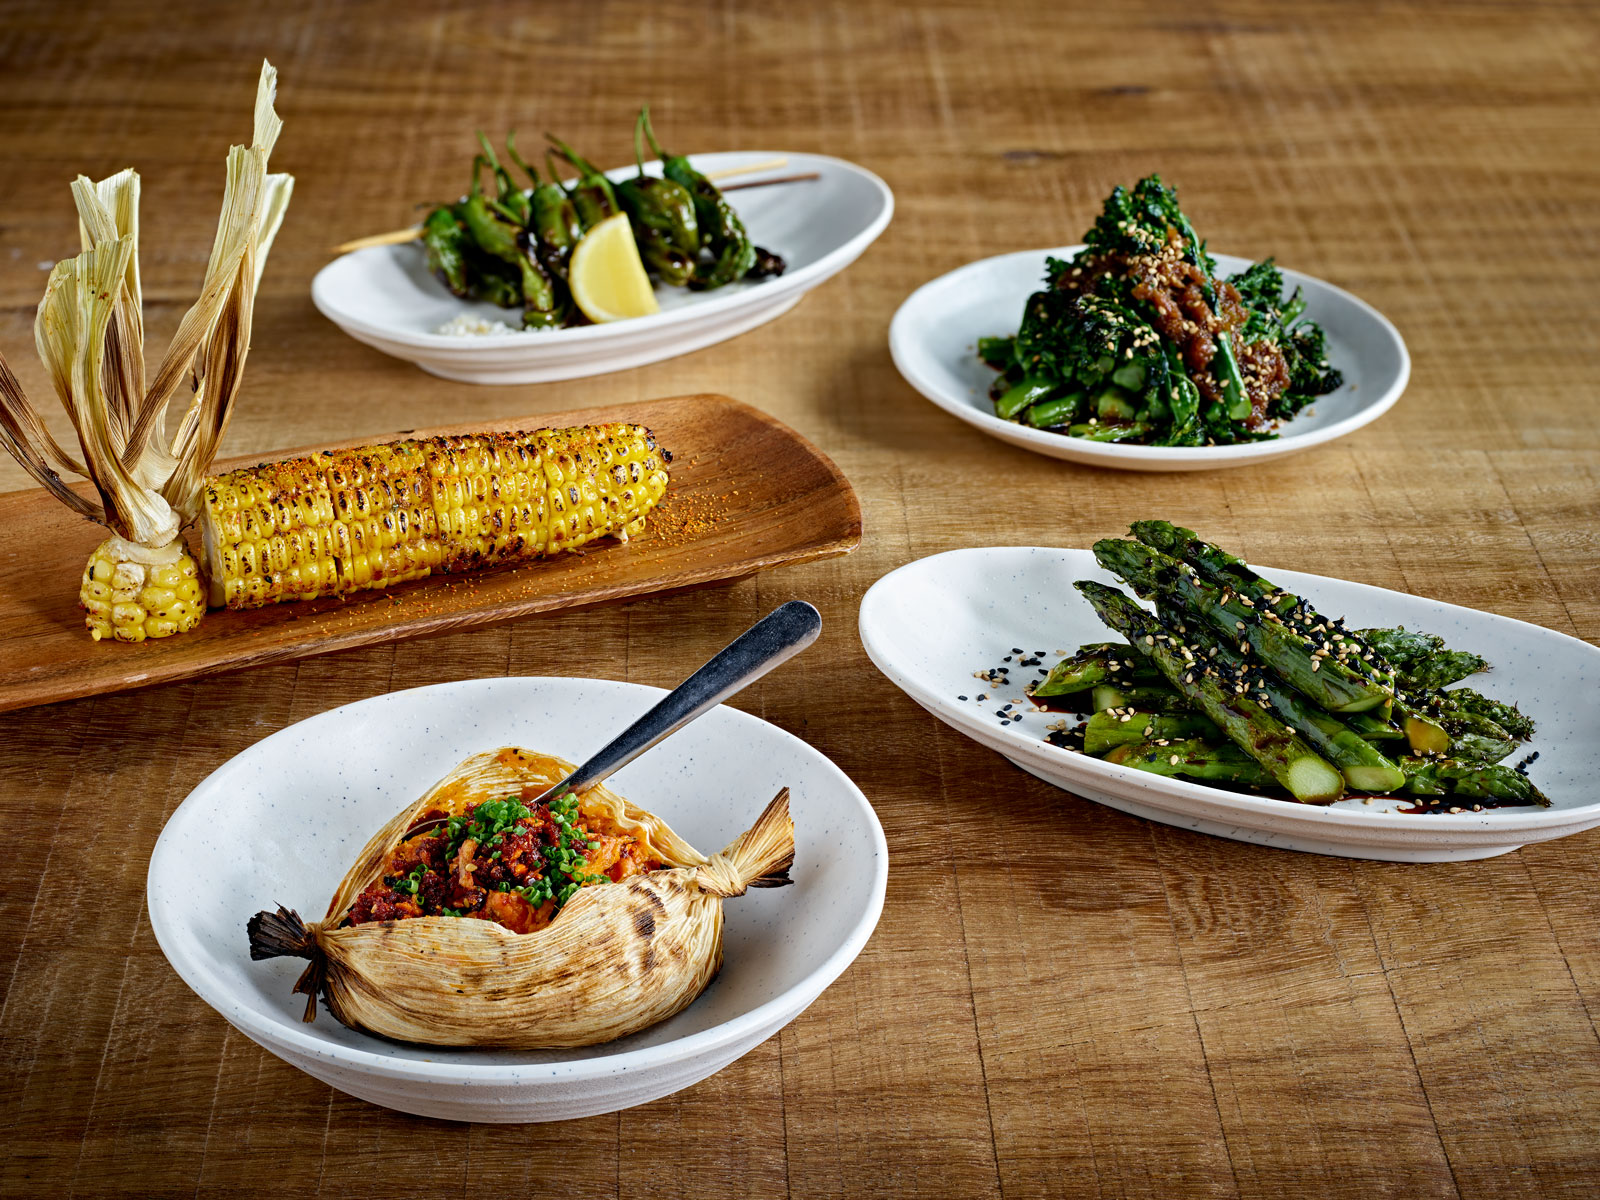 Vegetable Dishes at Inko Nito